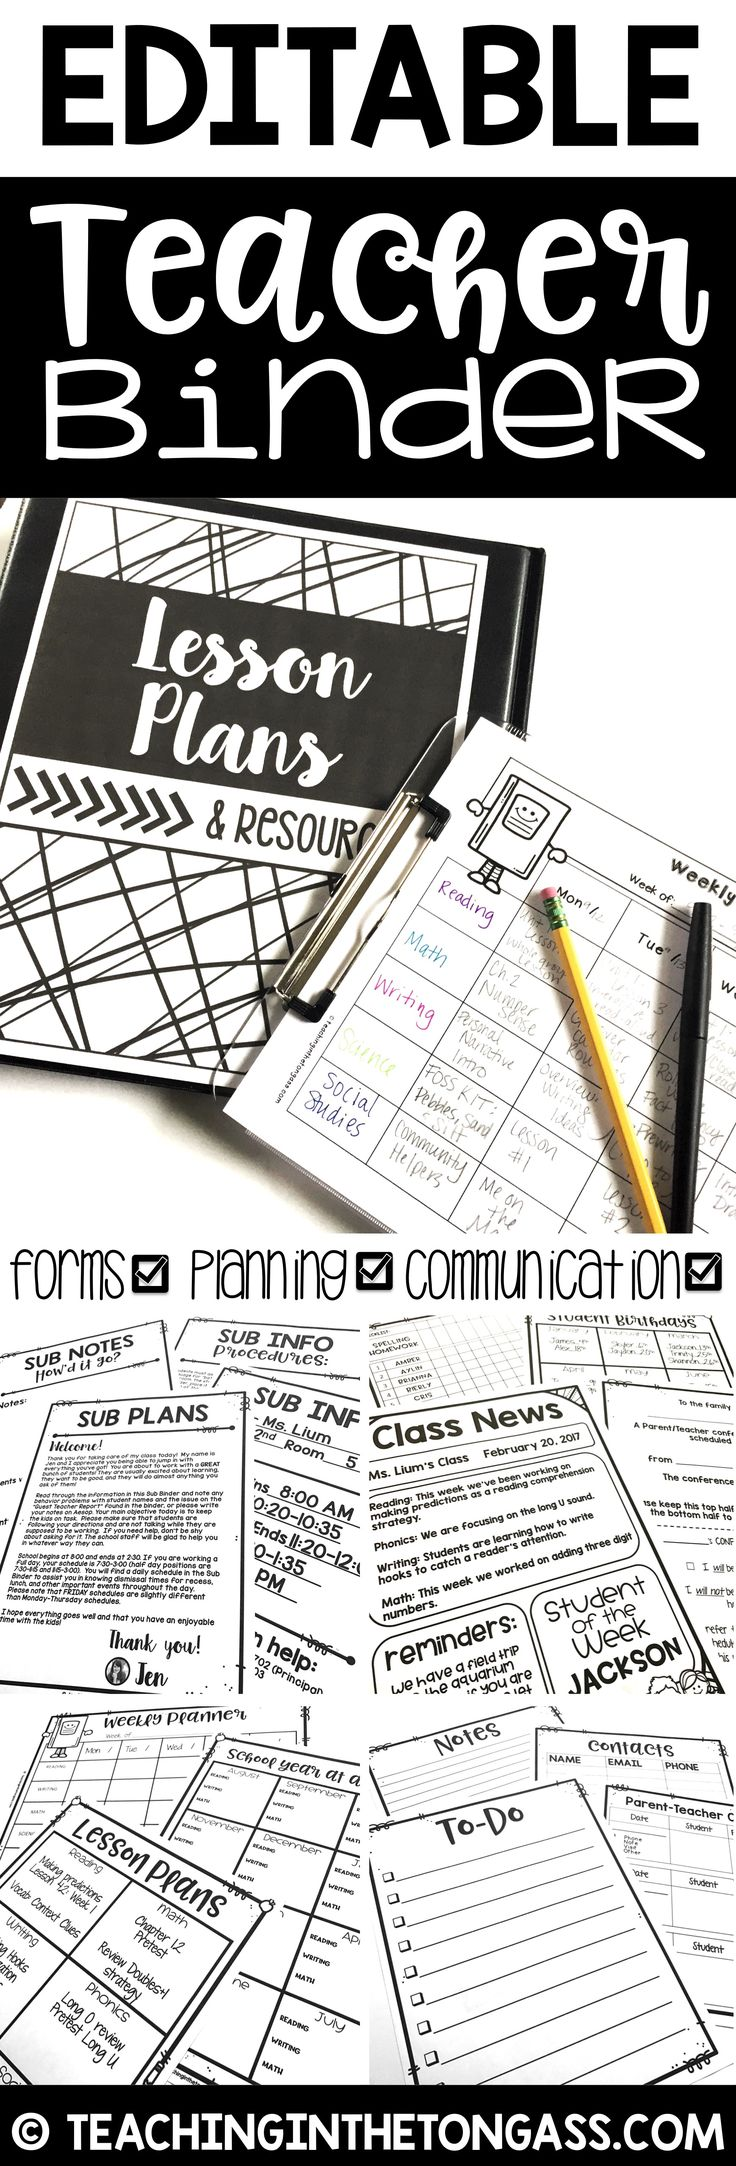 This Editable Teacher Binder is jam-packed with over 80 pages of teacher resources including binder covers, weekly planning pages, lesson plan template, substitute binder pages, class newsletter pages and more!